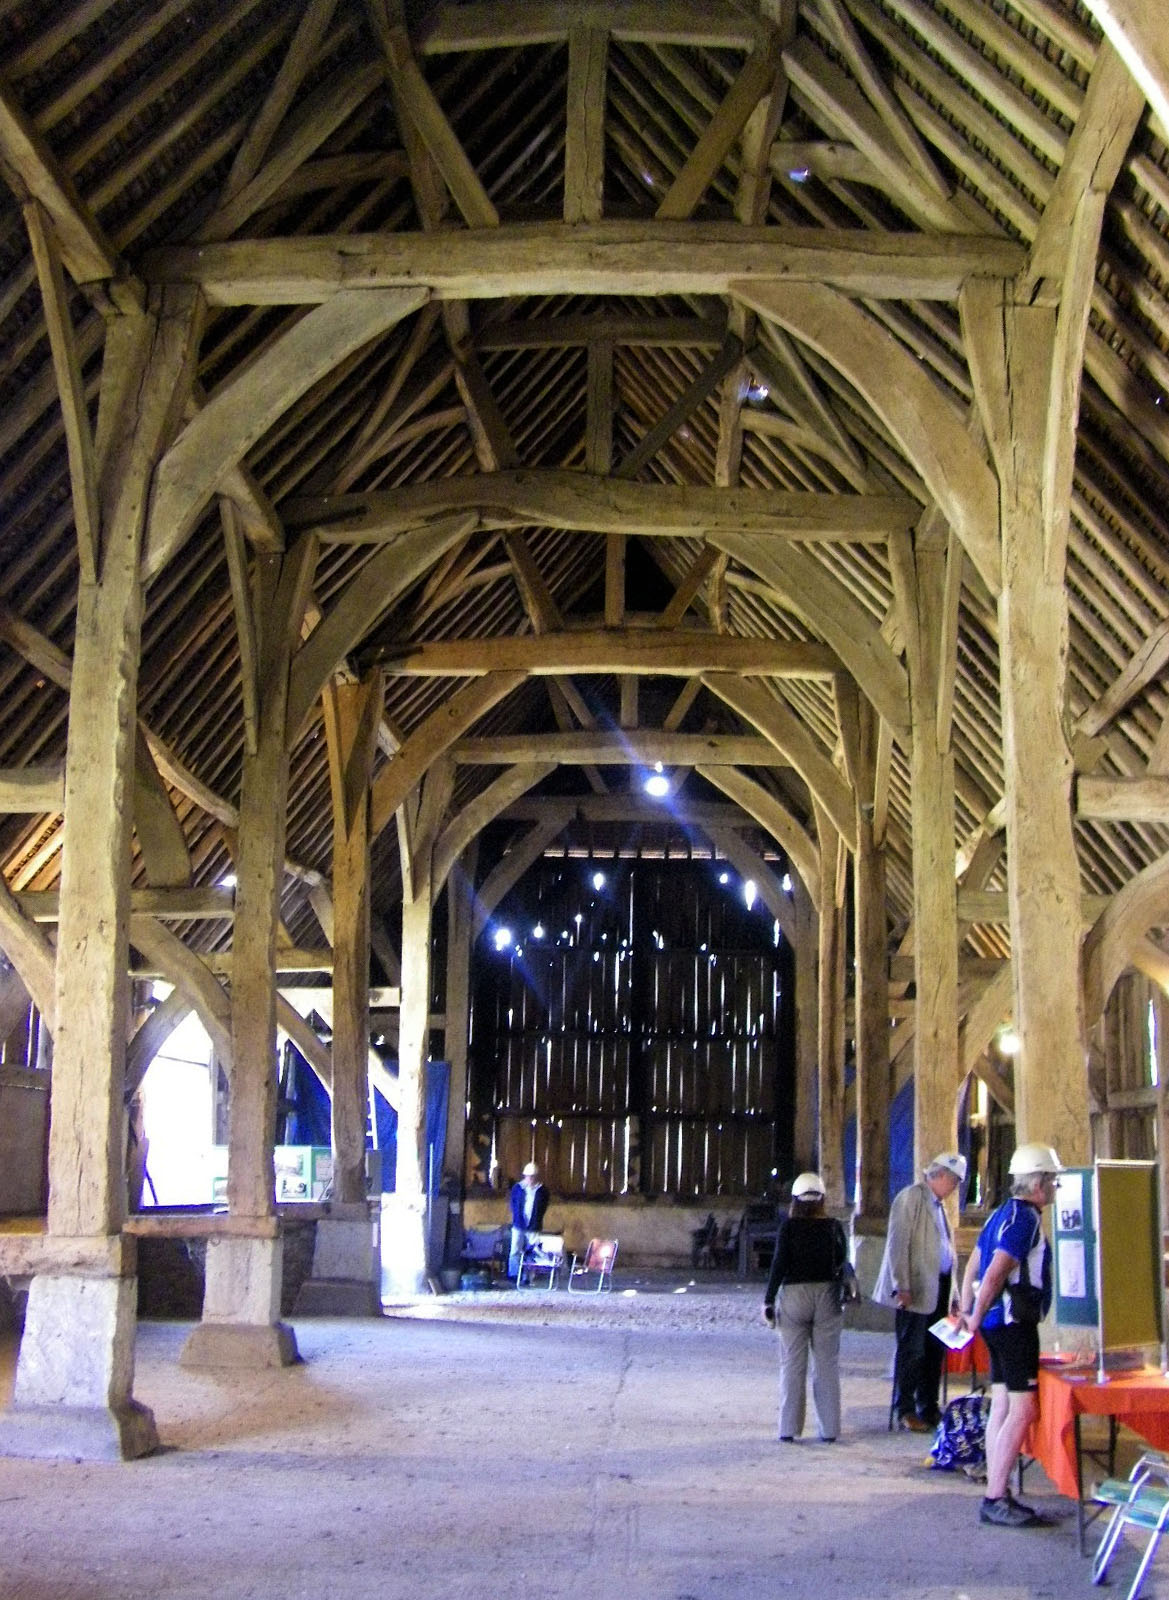 Harmondsworth great barn wikipedia for Interior images